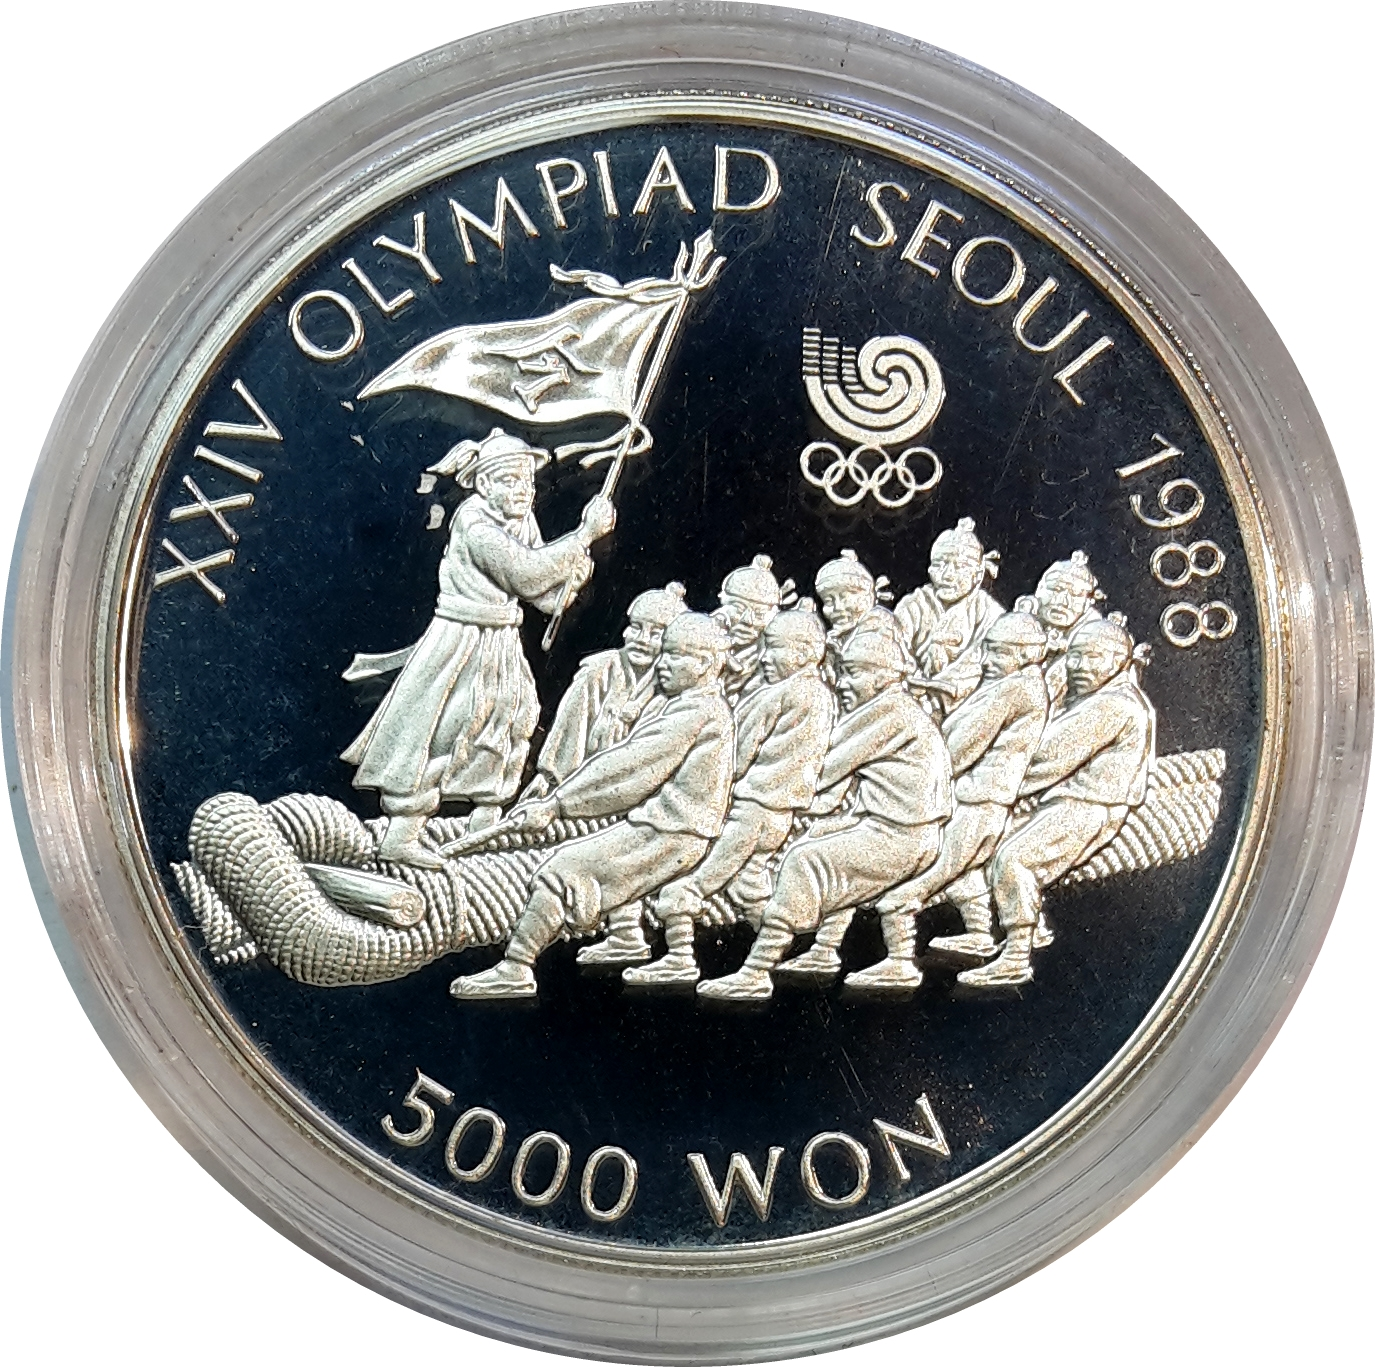 new Coins 05.2020